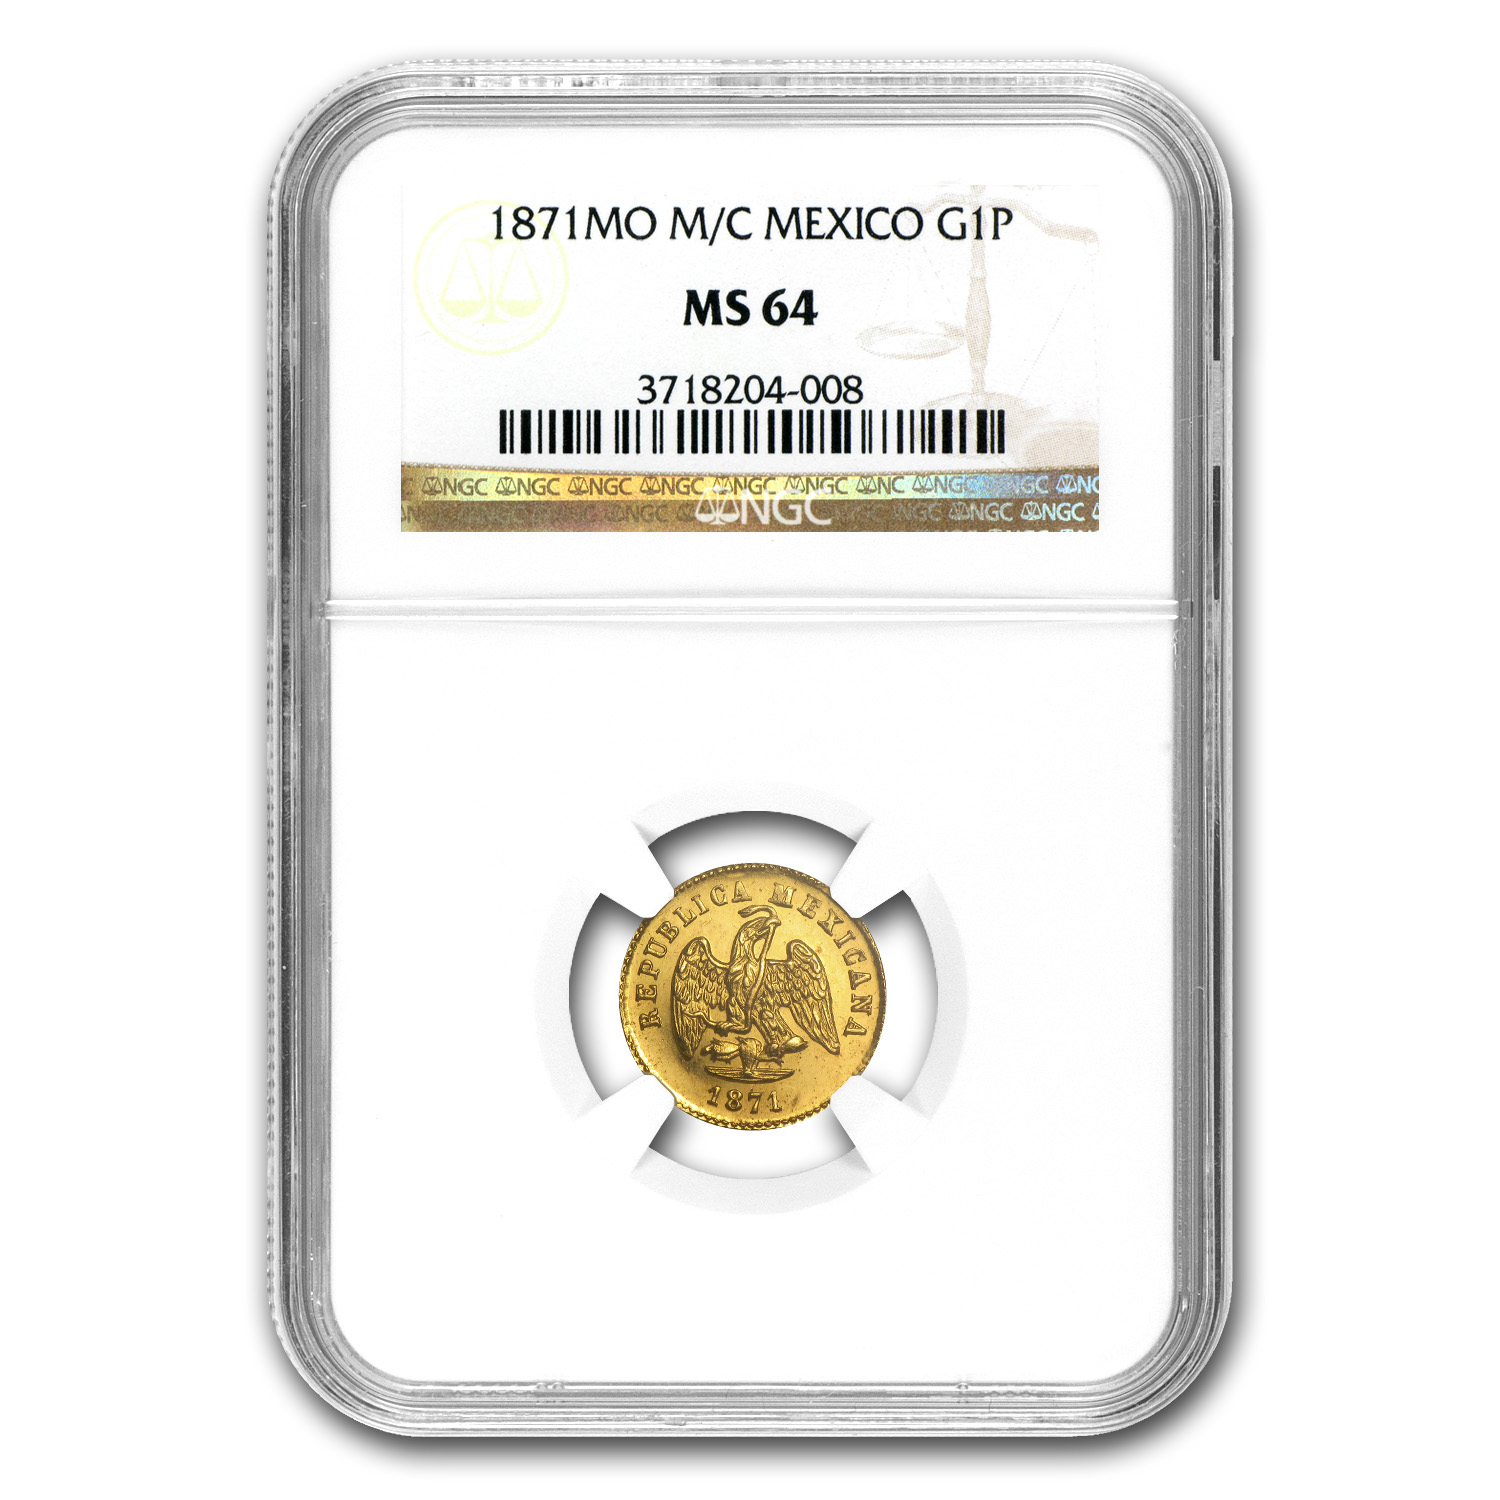 Mexico 1871-Mo M/C 1 Peso Gold Coin - MS-64 NGC